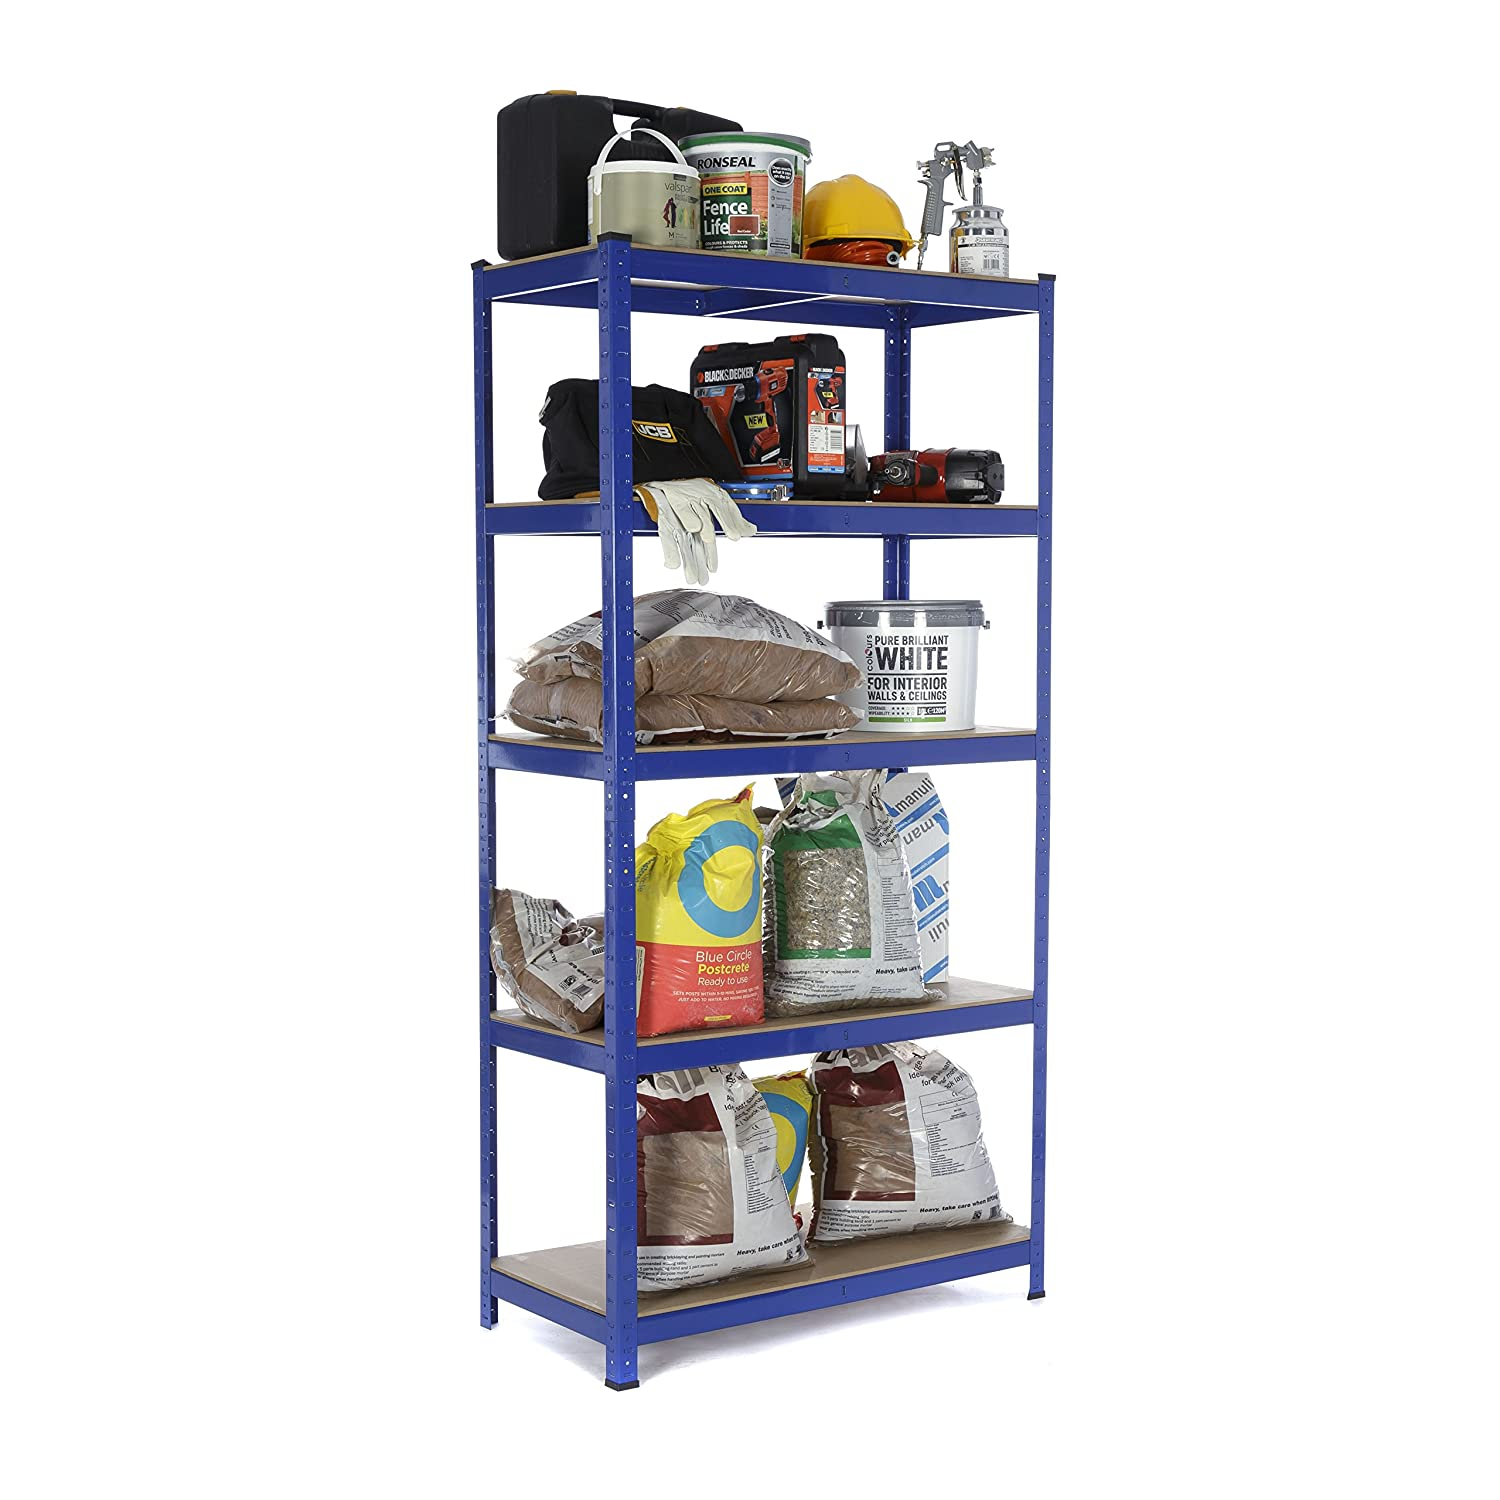 Heavy Duty Steel Shelving Garage Racking Unit 275kg per shelf (5 Levels 1800mm H x 900mm W x 450mm D) + FREE NEXT DAY DELIVERY Racking Solutions